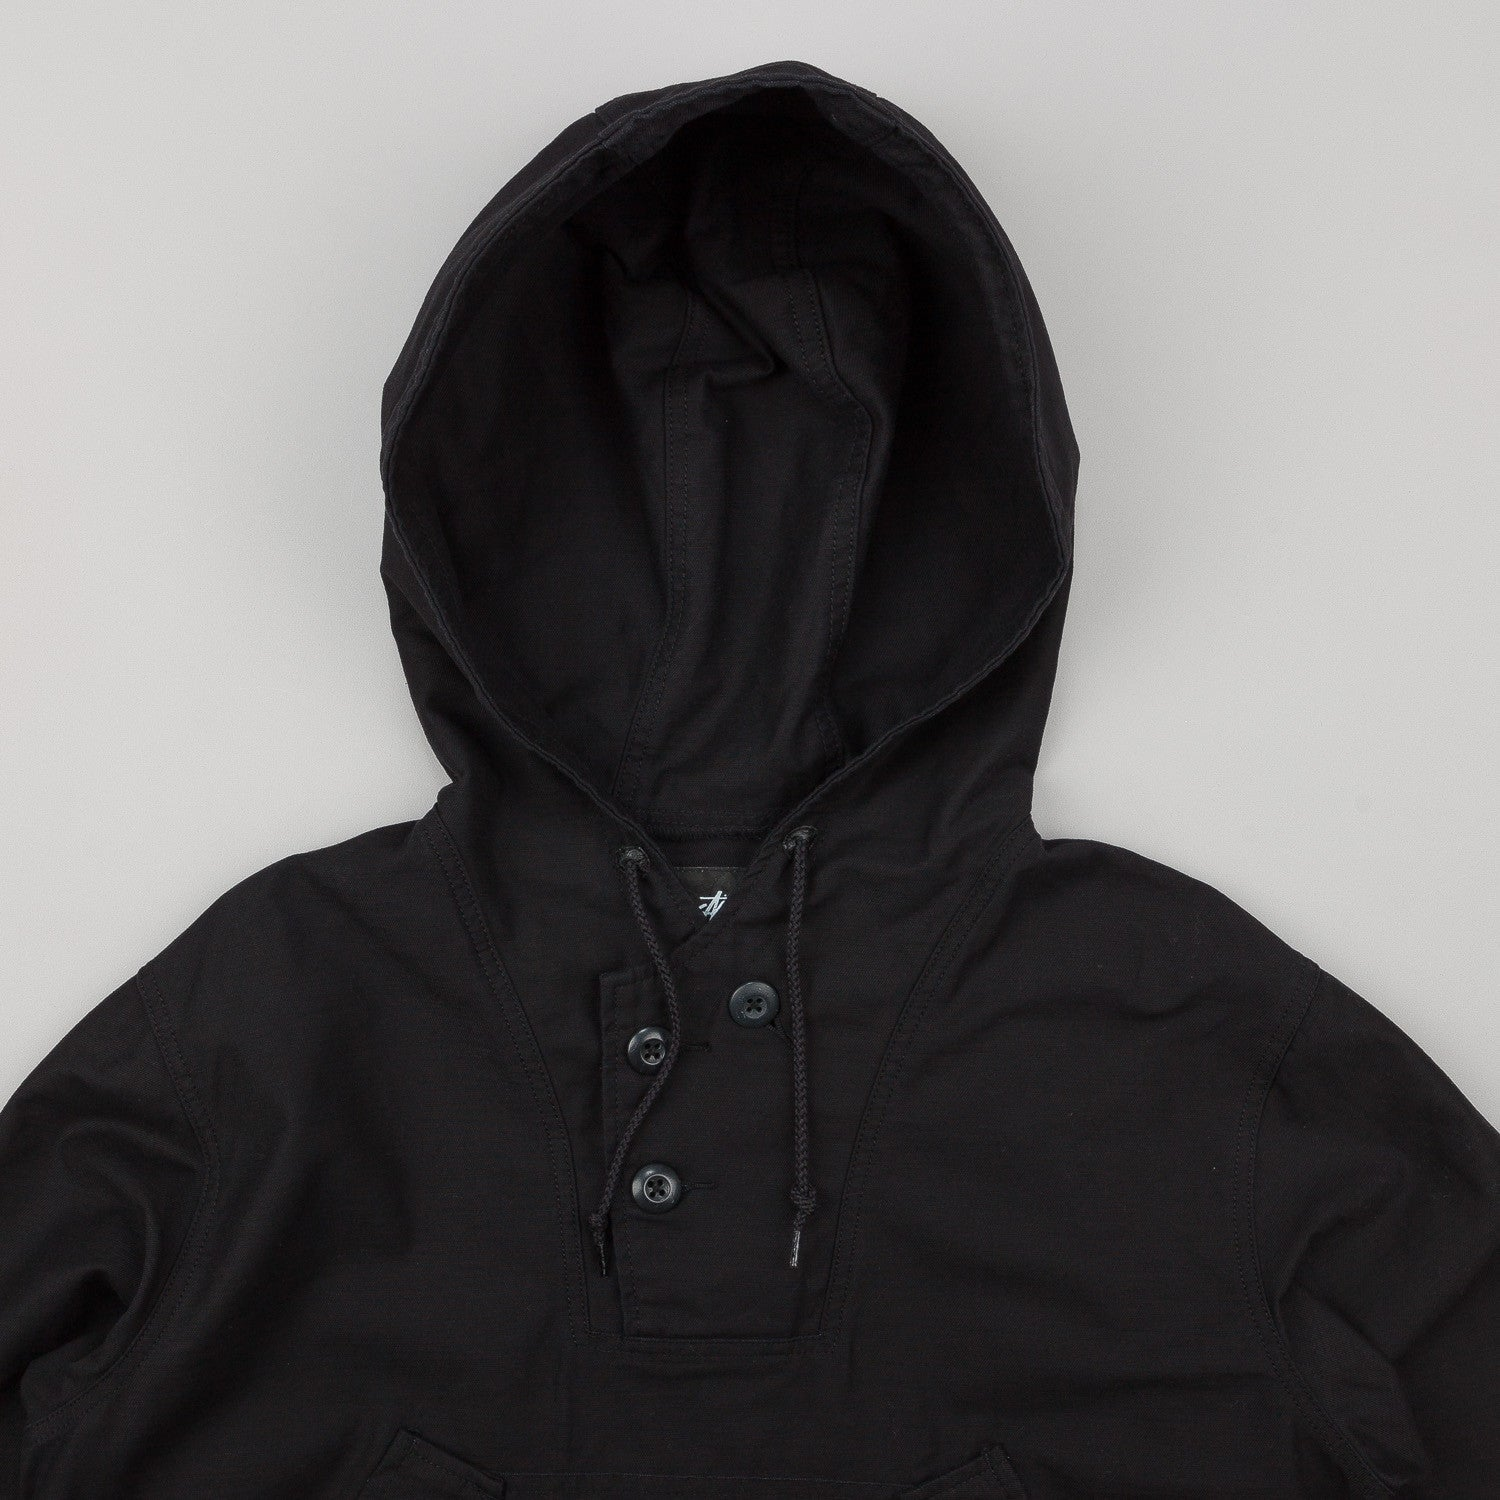 Stussy Military Poncho Jacket - Black